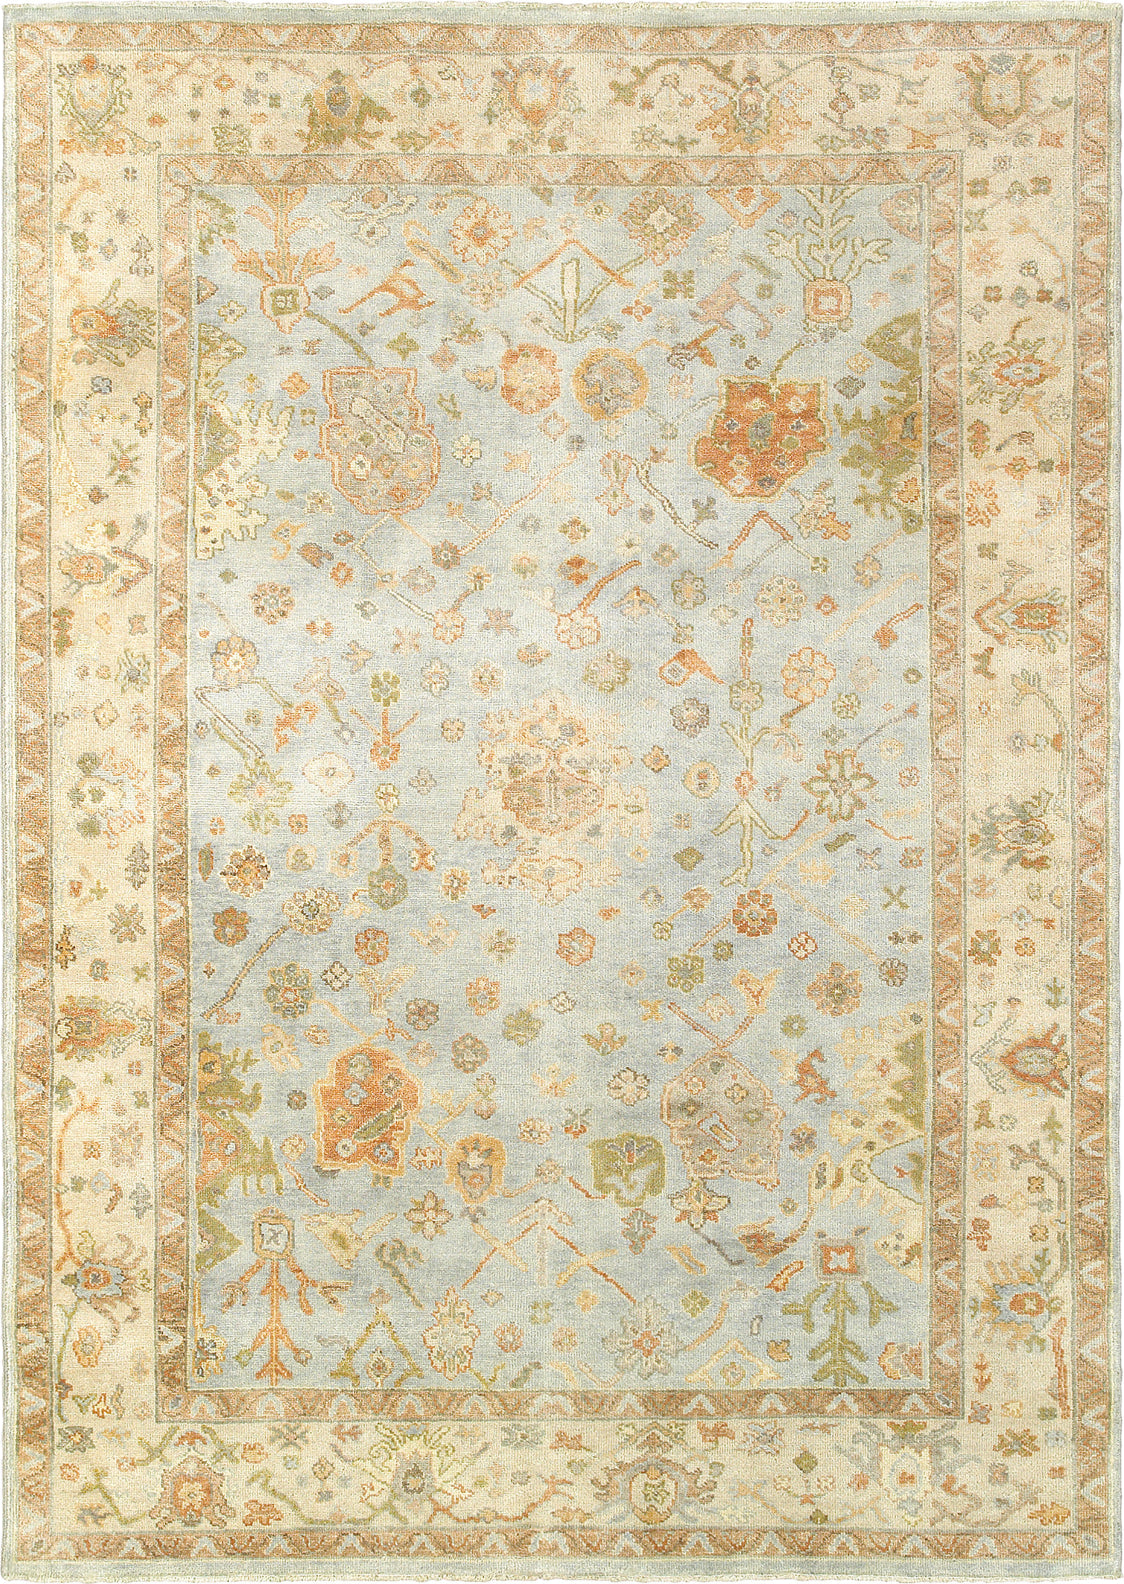 Tommy Bahama Palace 10304 Blue Area Rug main image